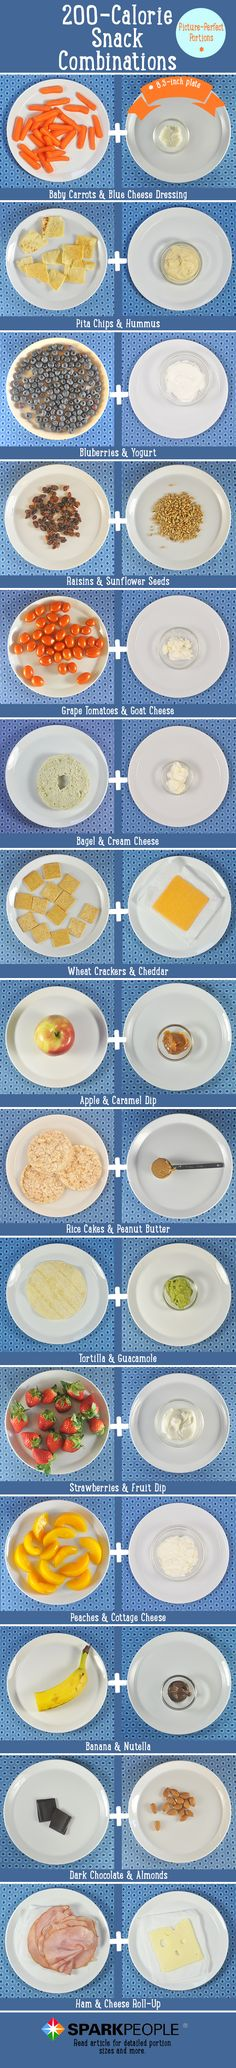 Need a snack recipe? We've created an awesome visual graphic to show you exactly how much you can eat of different snack foods combined to equal 200 calories. Healthy Habits, Get Healthy, Healthy Tips, Healthy Snacks, Healthy Recipes, Quick Snacks, Healthy Midnight Snacks, Eating Healthy, Nutrition Articles